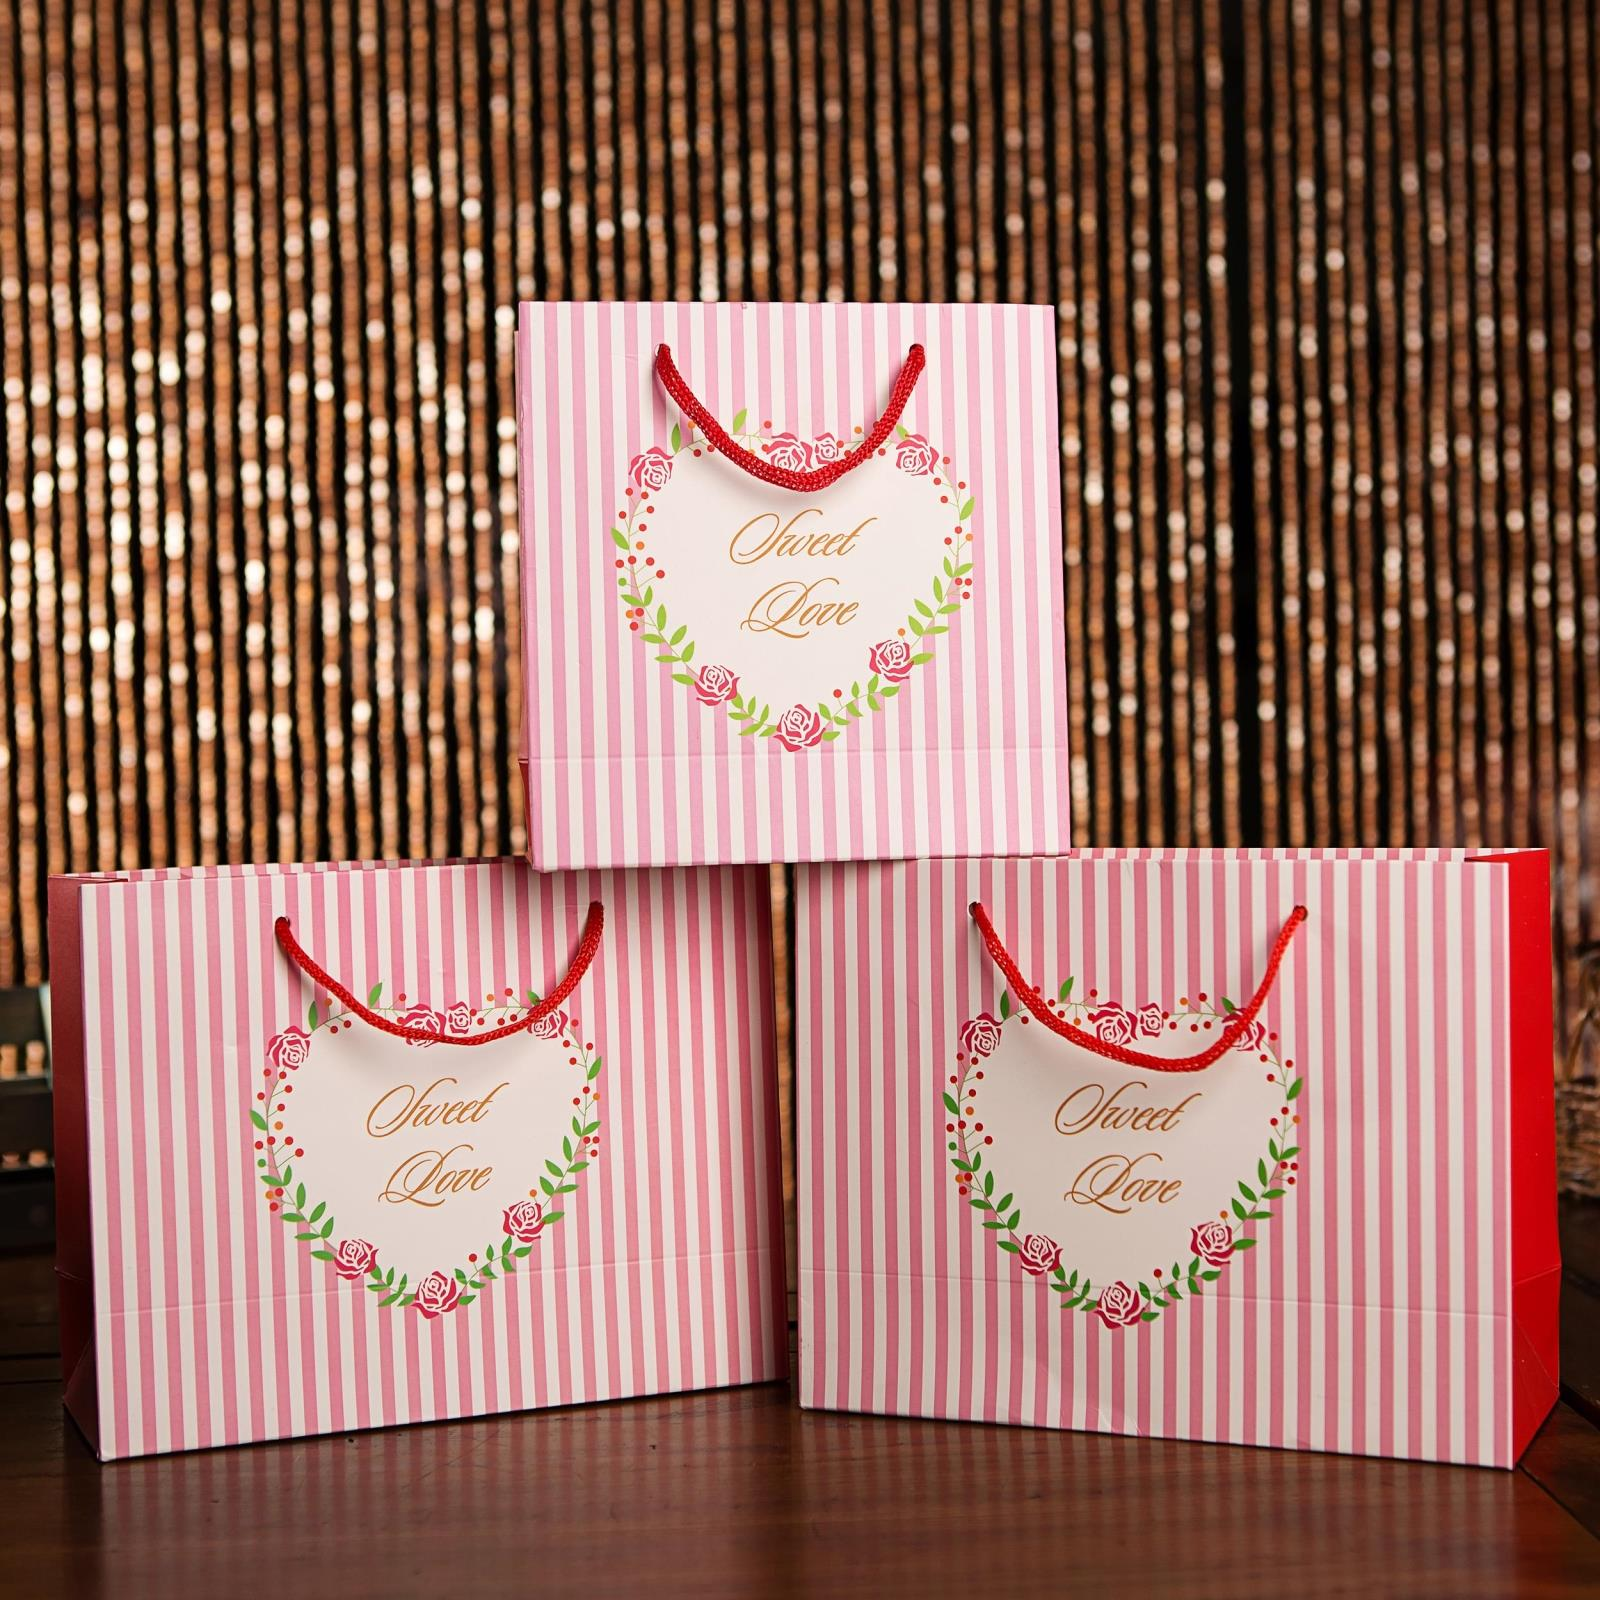 China Wedding Album Bag, China Wedding Album Bag Shopping Guide at ...